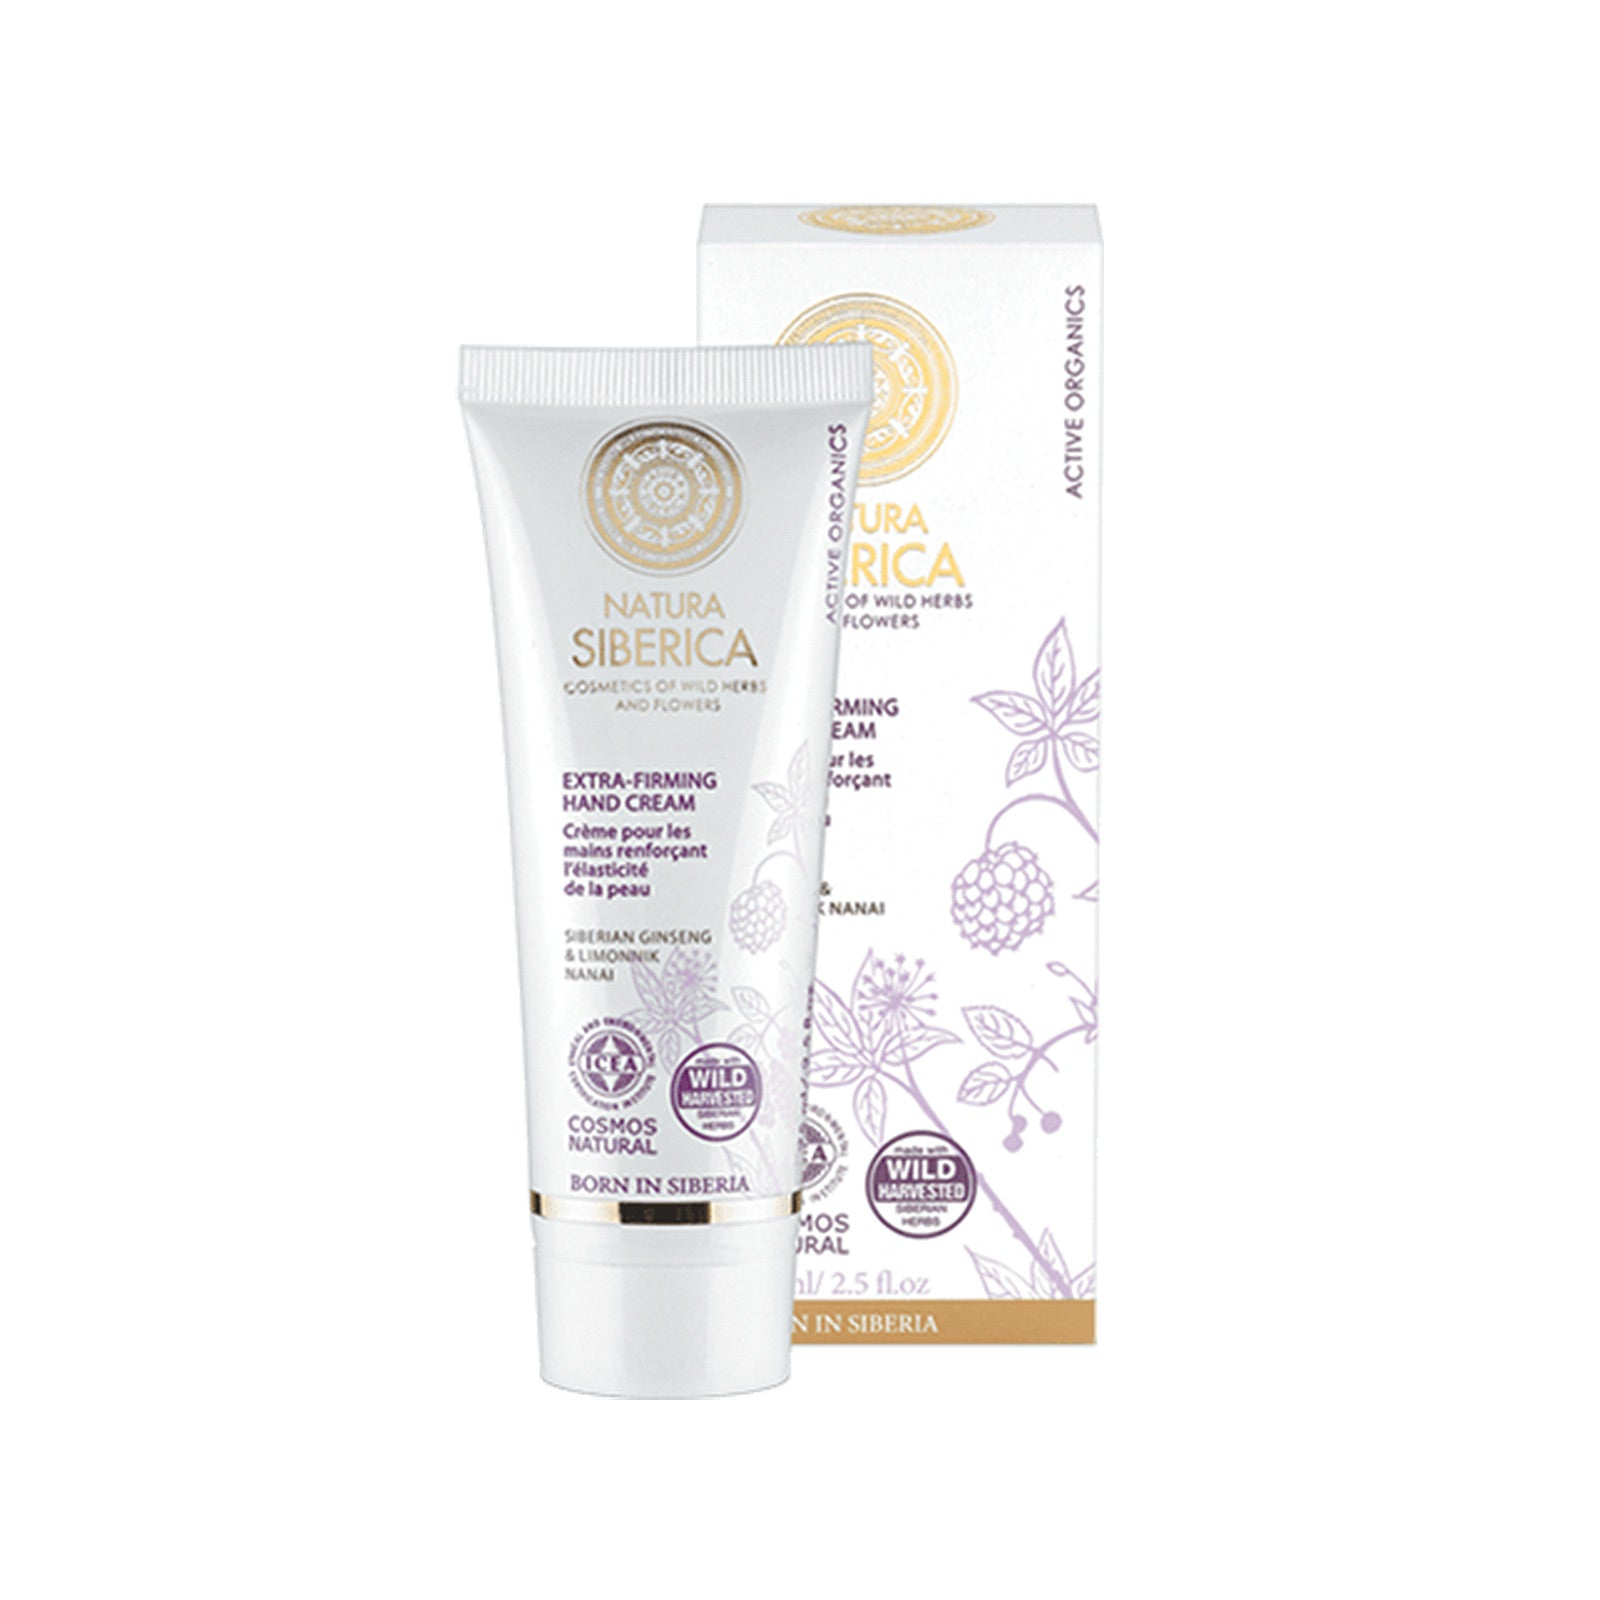 Extra-Firming Hand Cream, 75 ml